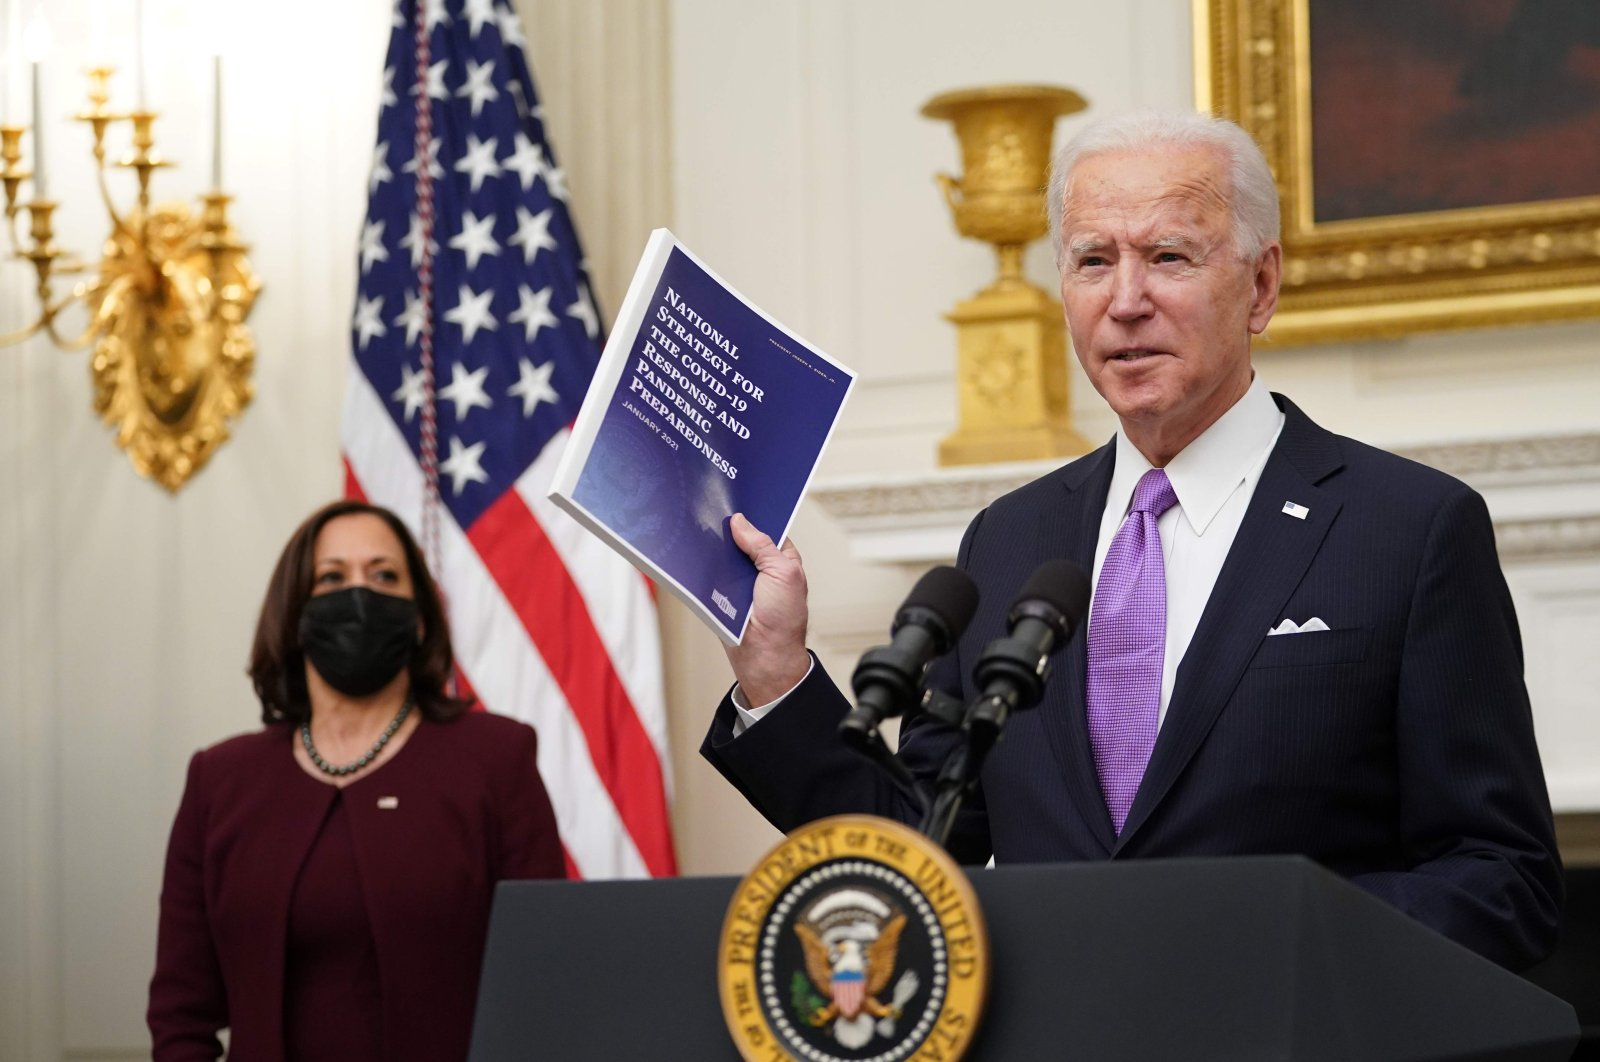 U.S. President Joe Biden speaks about the COVID-19 response as U.S. Vice President Kamala Harris (L) looks on before signing executive orders in the State Dining Room of the White House in Washington, D.C., U.S., Jan. 21, 2021. (AFP Photo)